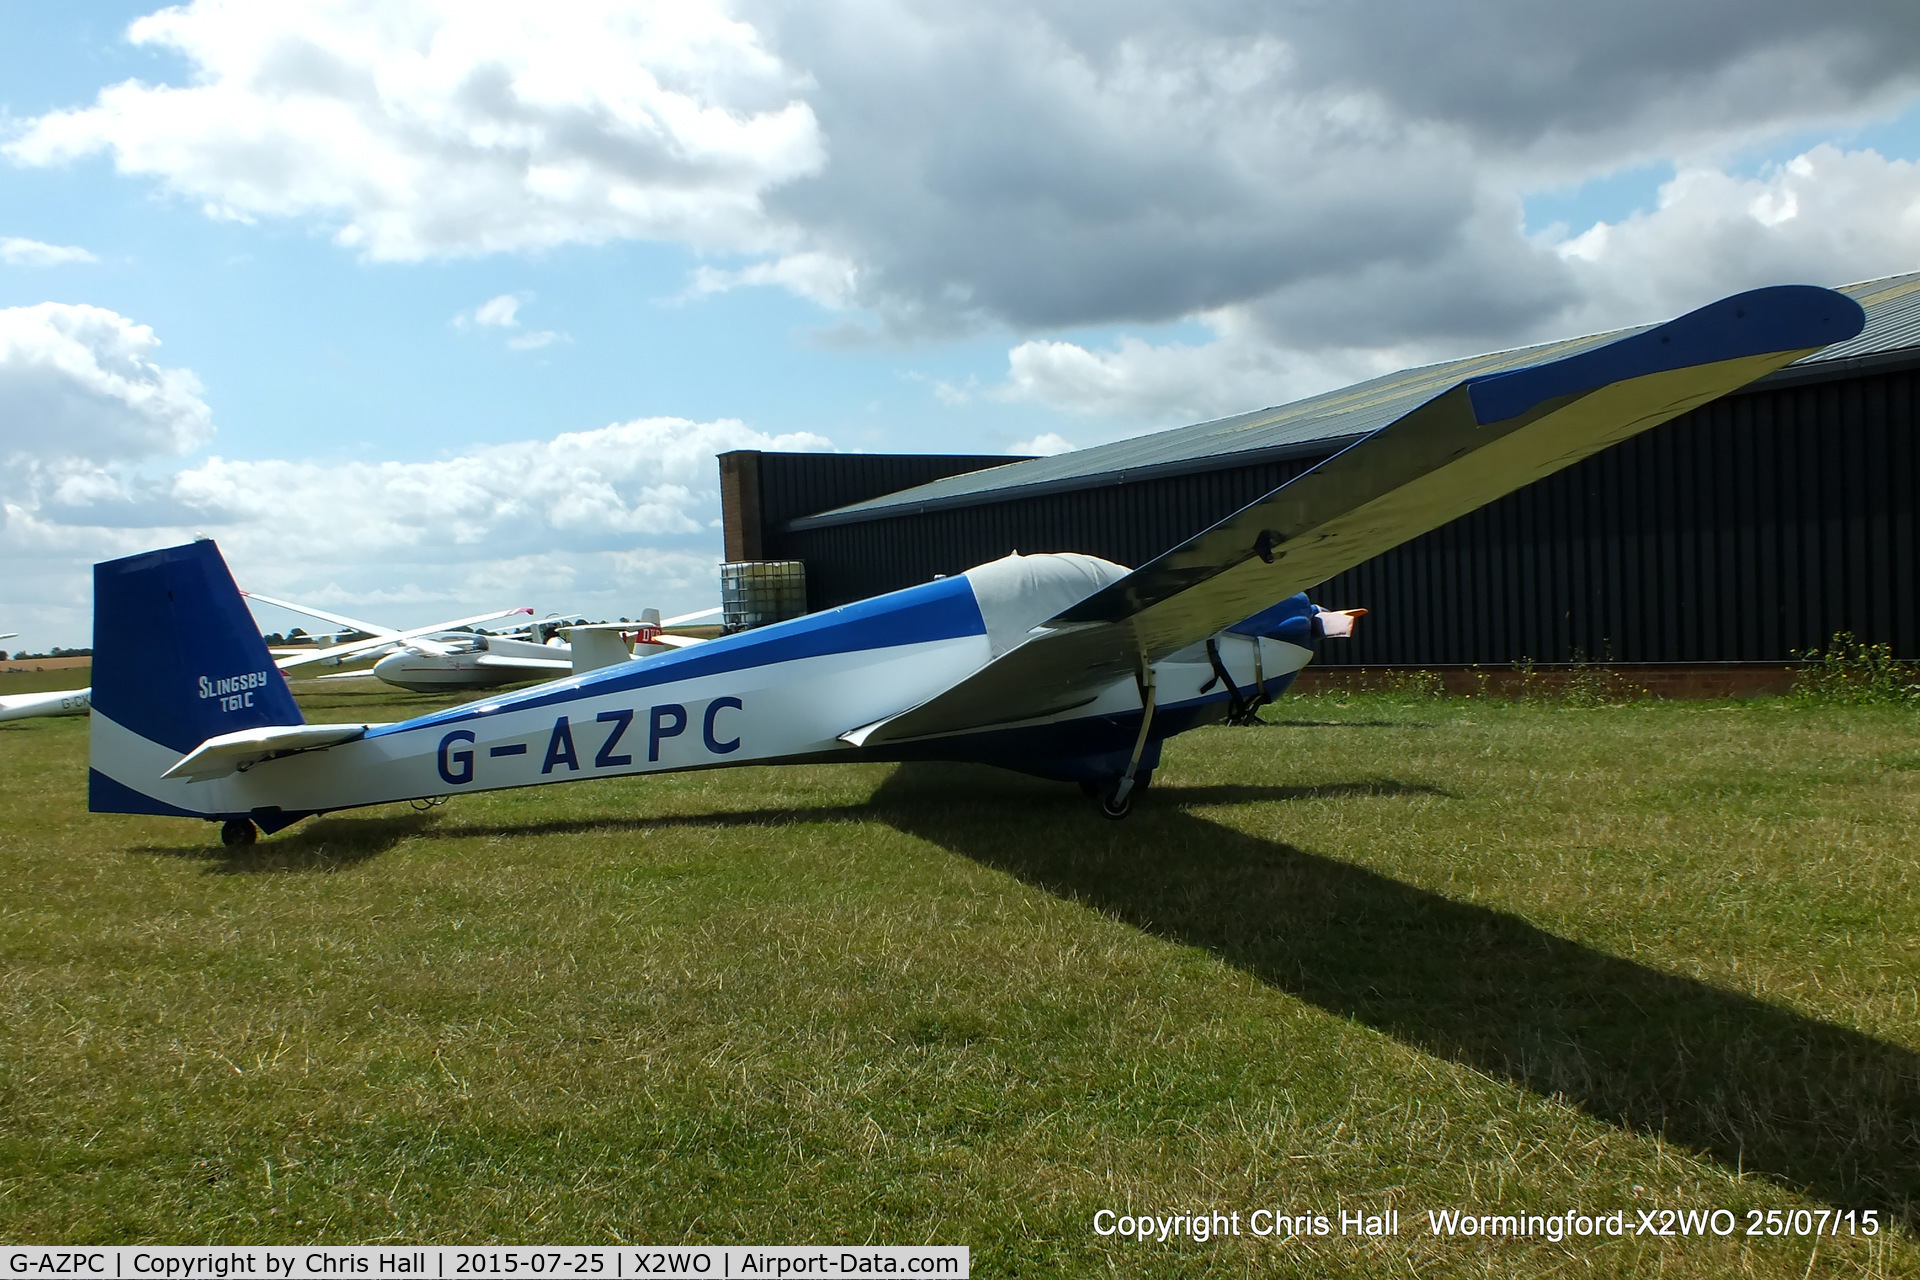 G-AZPC, 1972 Slingsby T-61C Falke C/N 1767, at Wormingford airfield